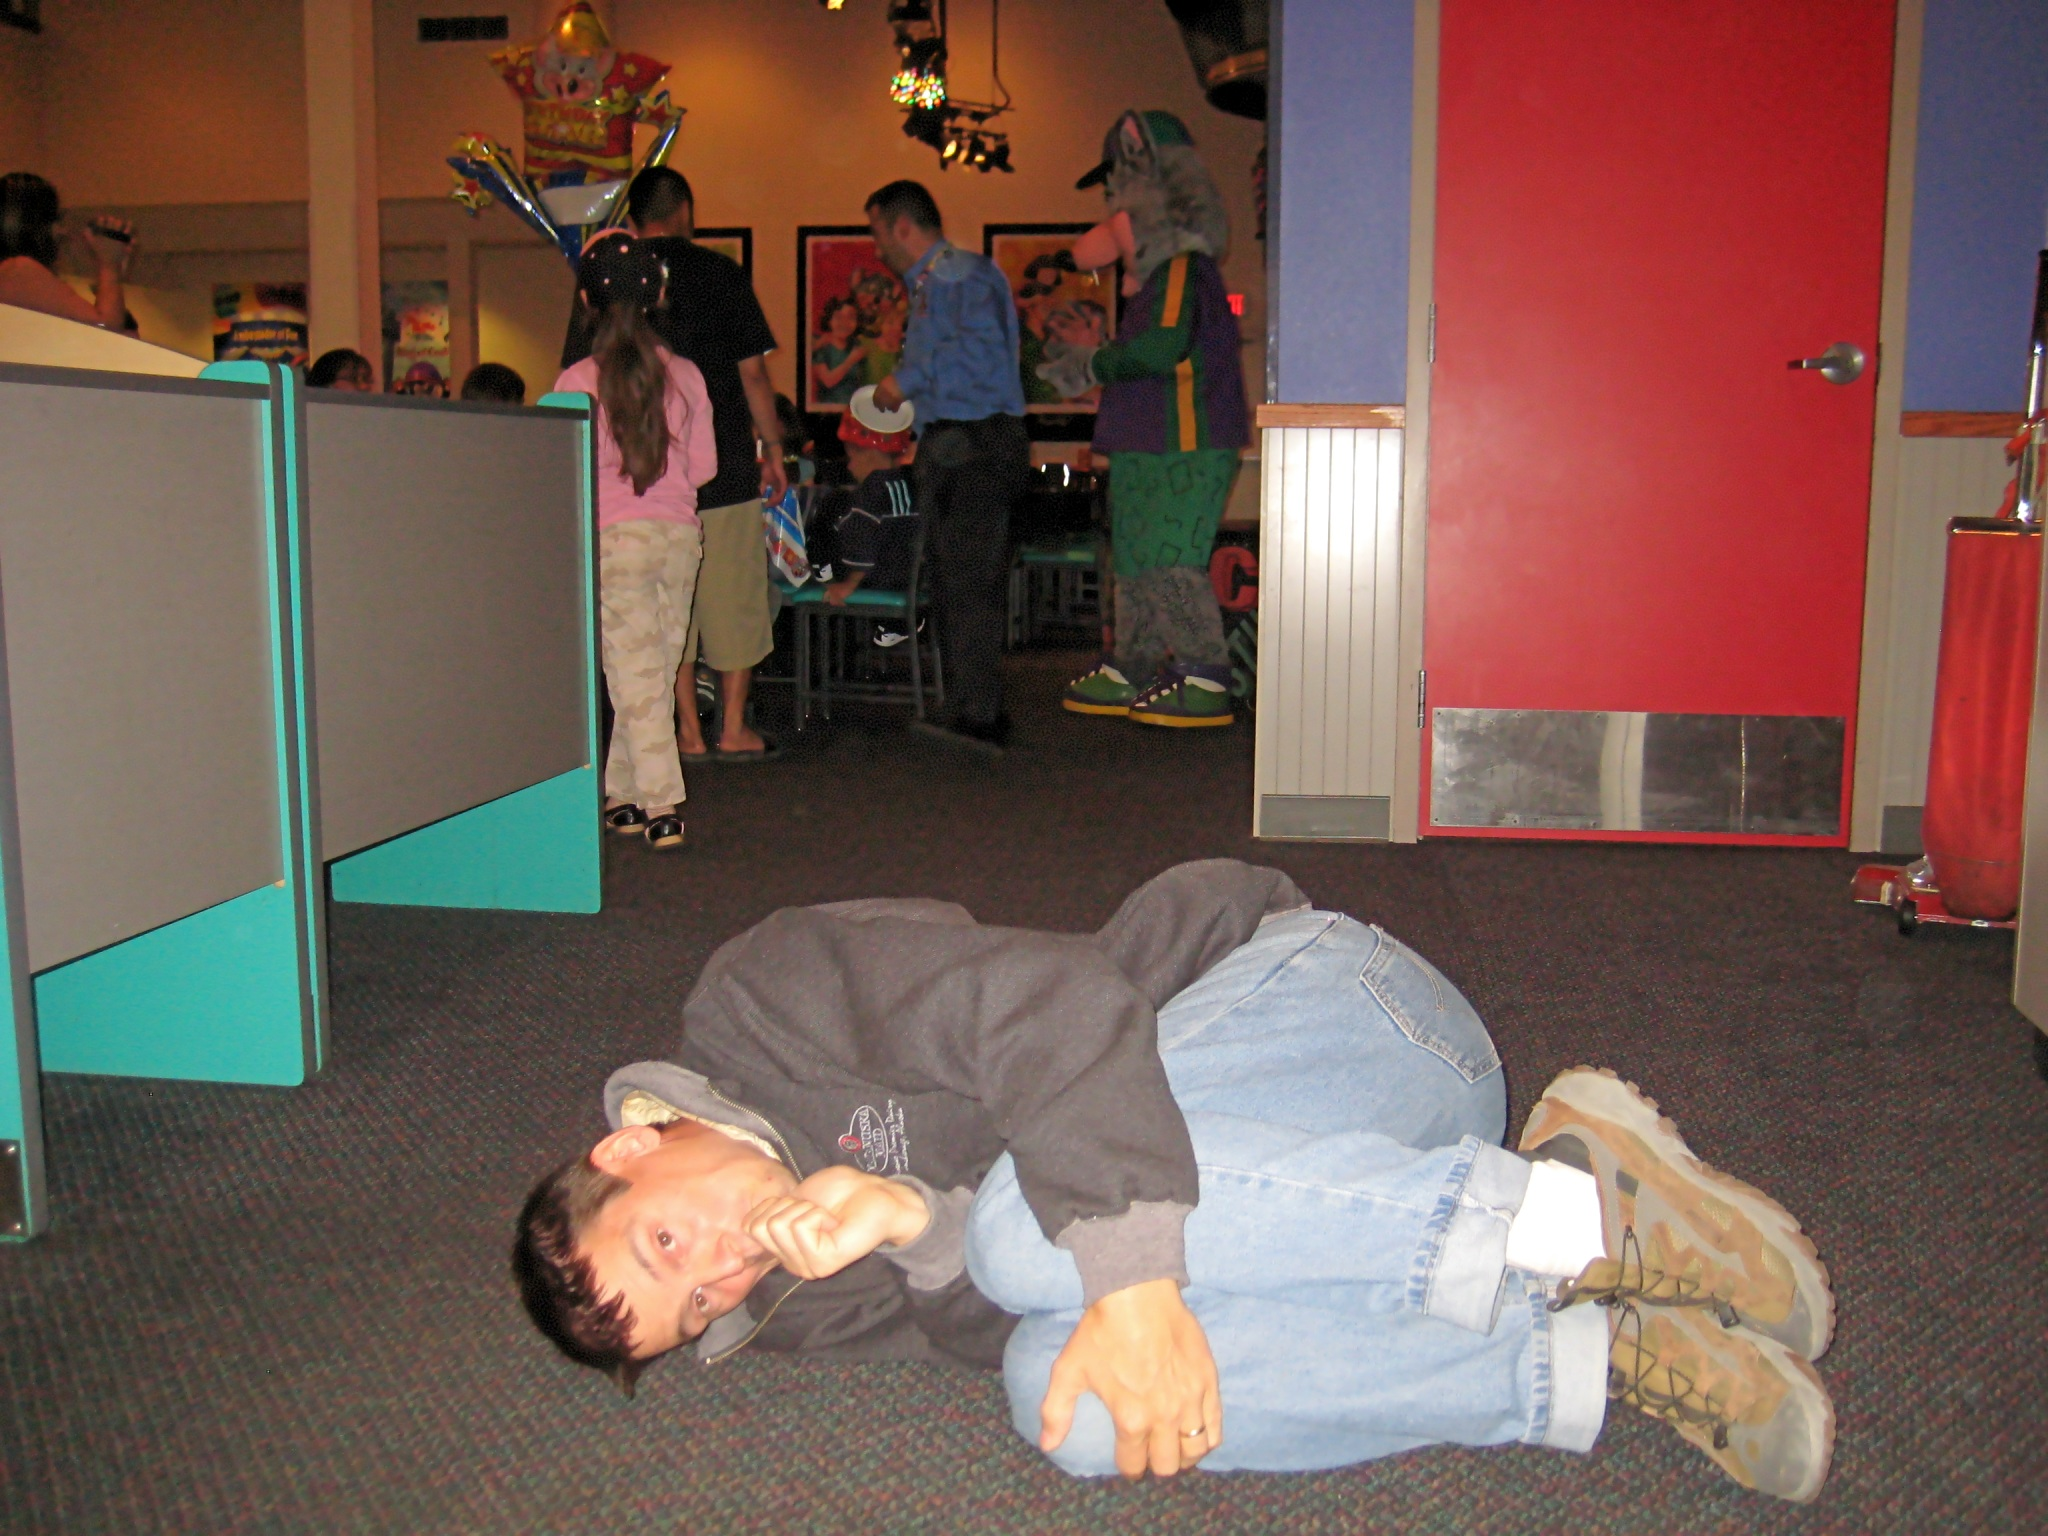 david_at_chuck_e_cheese_2048.jpg